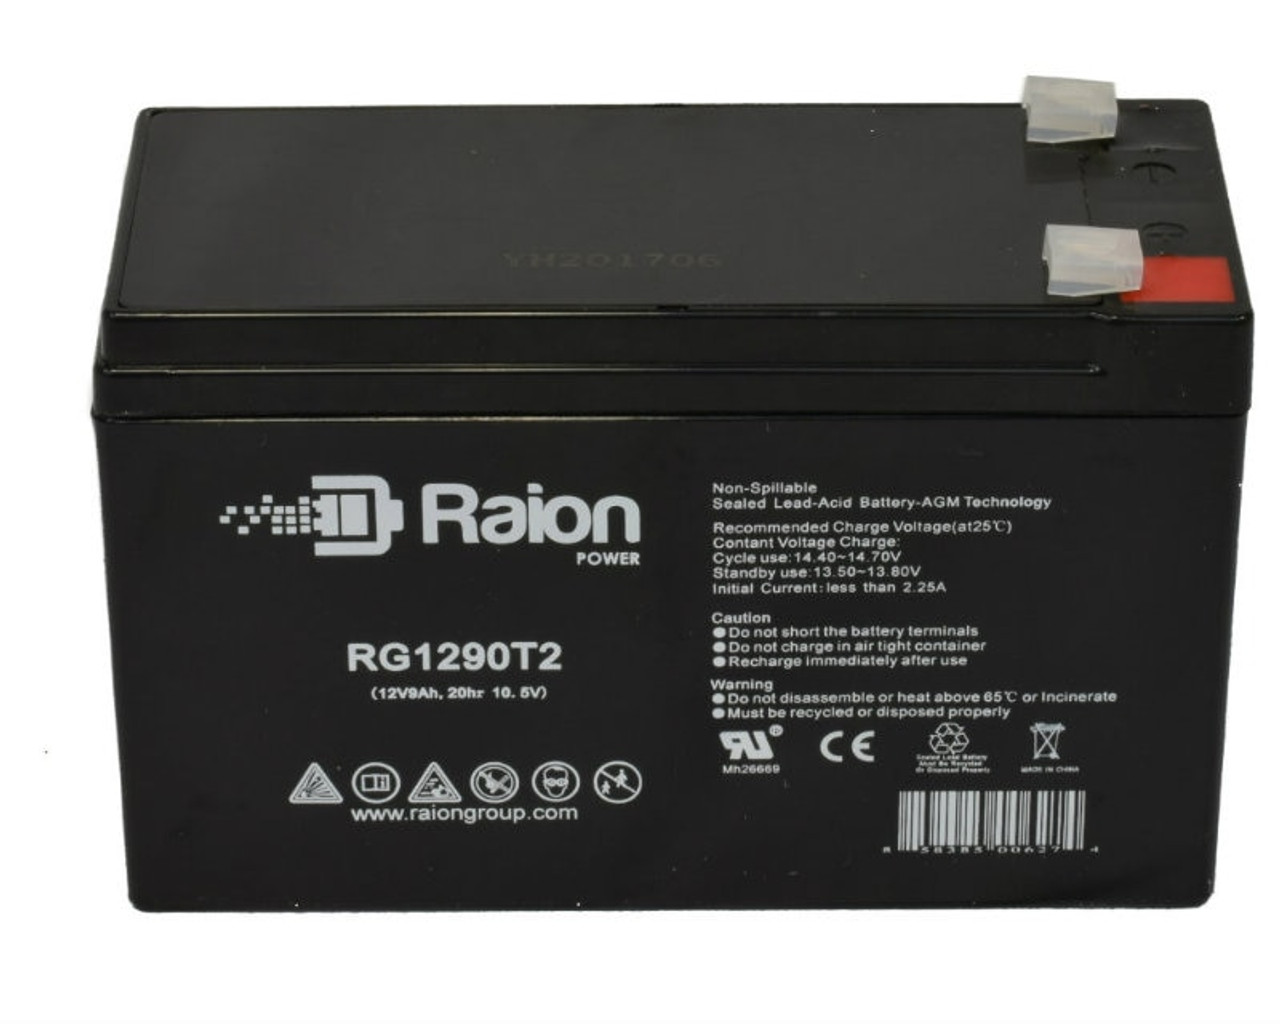 Raion Power 12V 9Ah SLA Battery With T2 Terminals For Potter Electric PFC-5002RG1290T2 Fire Alarm Control Panel